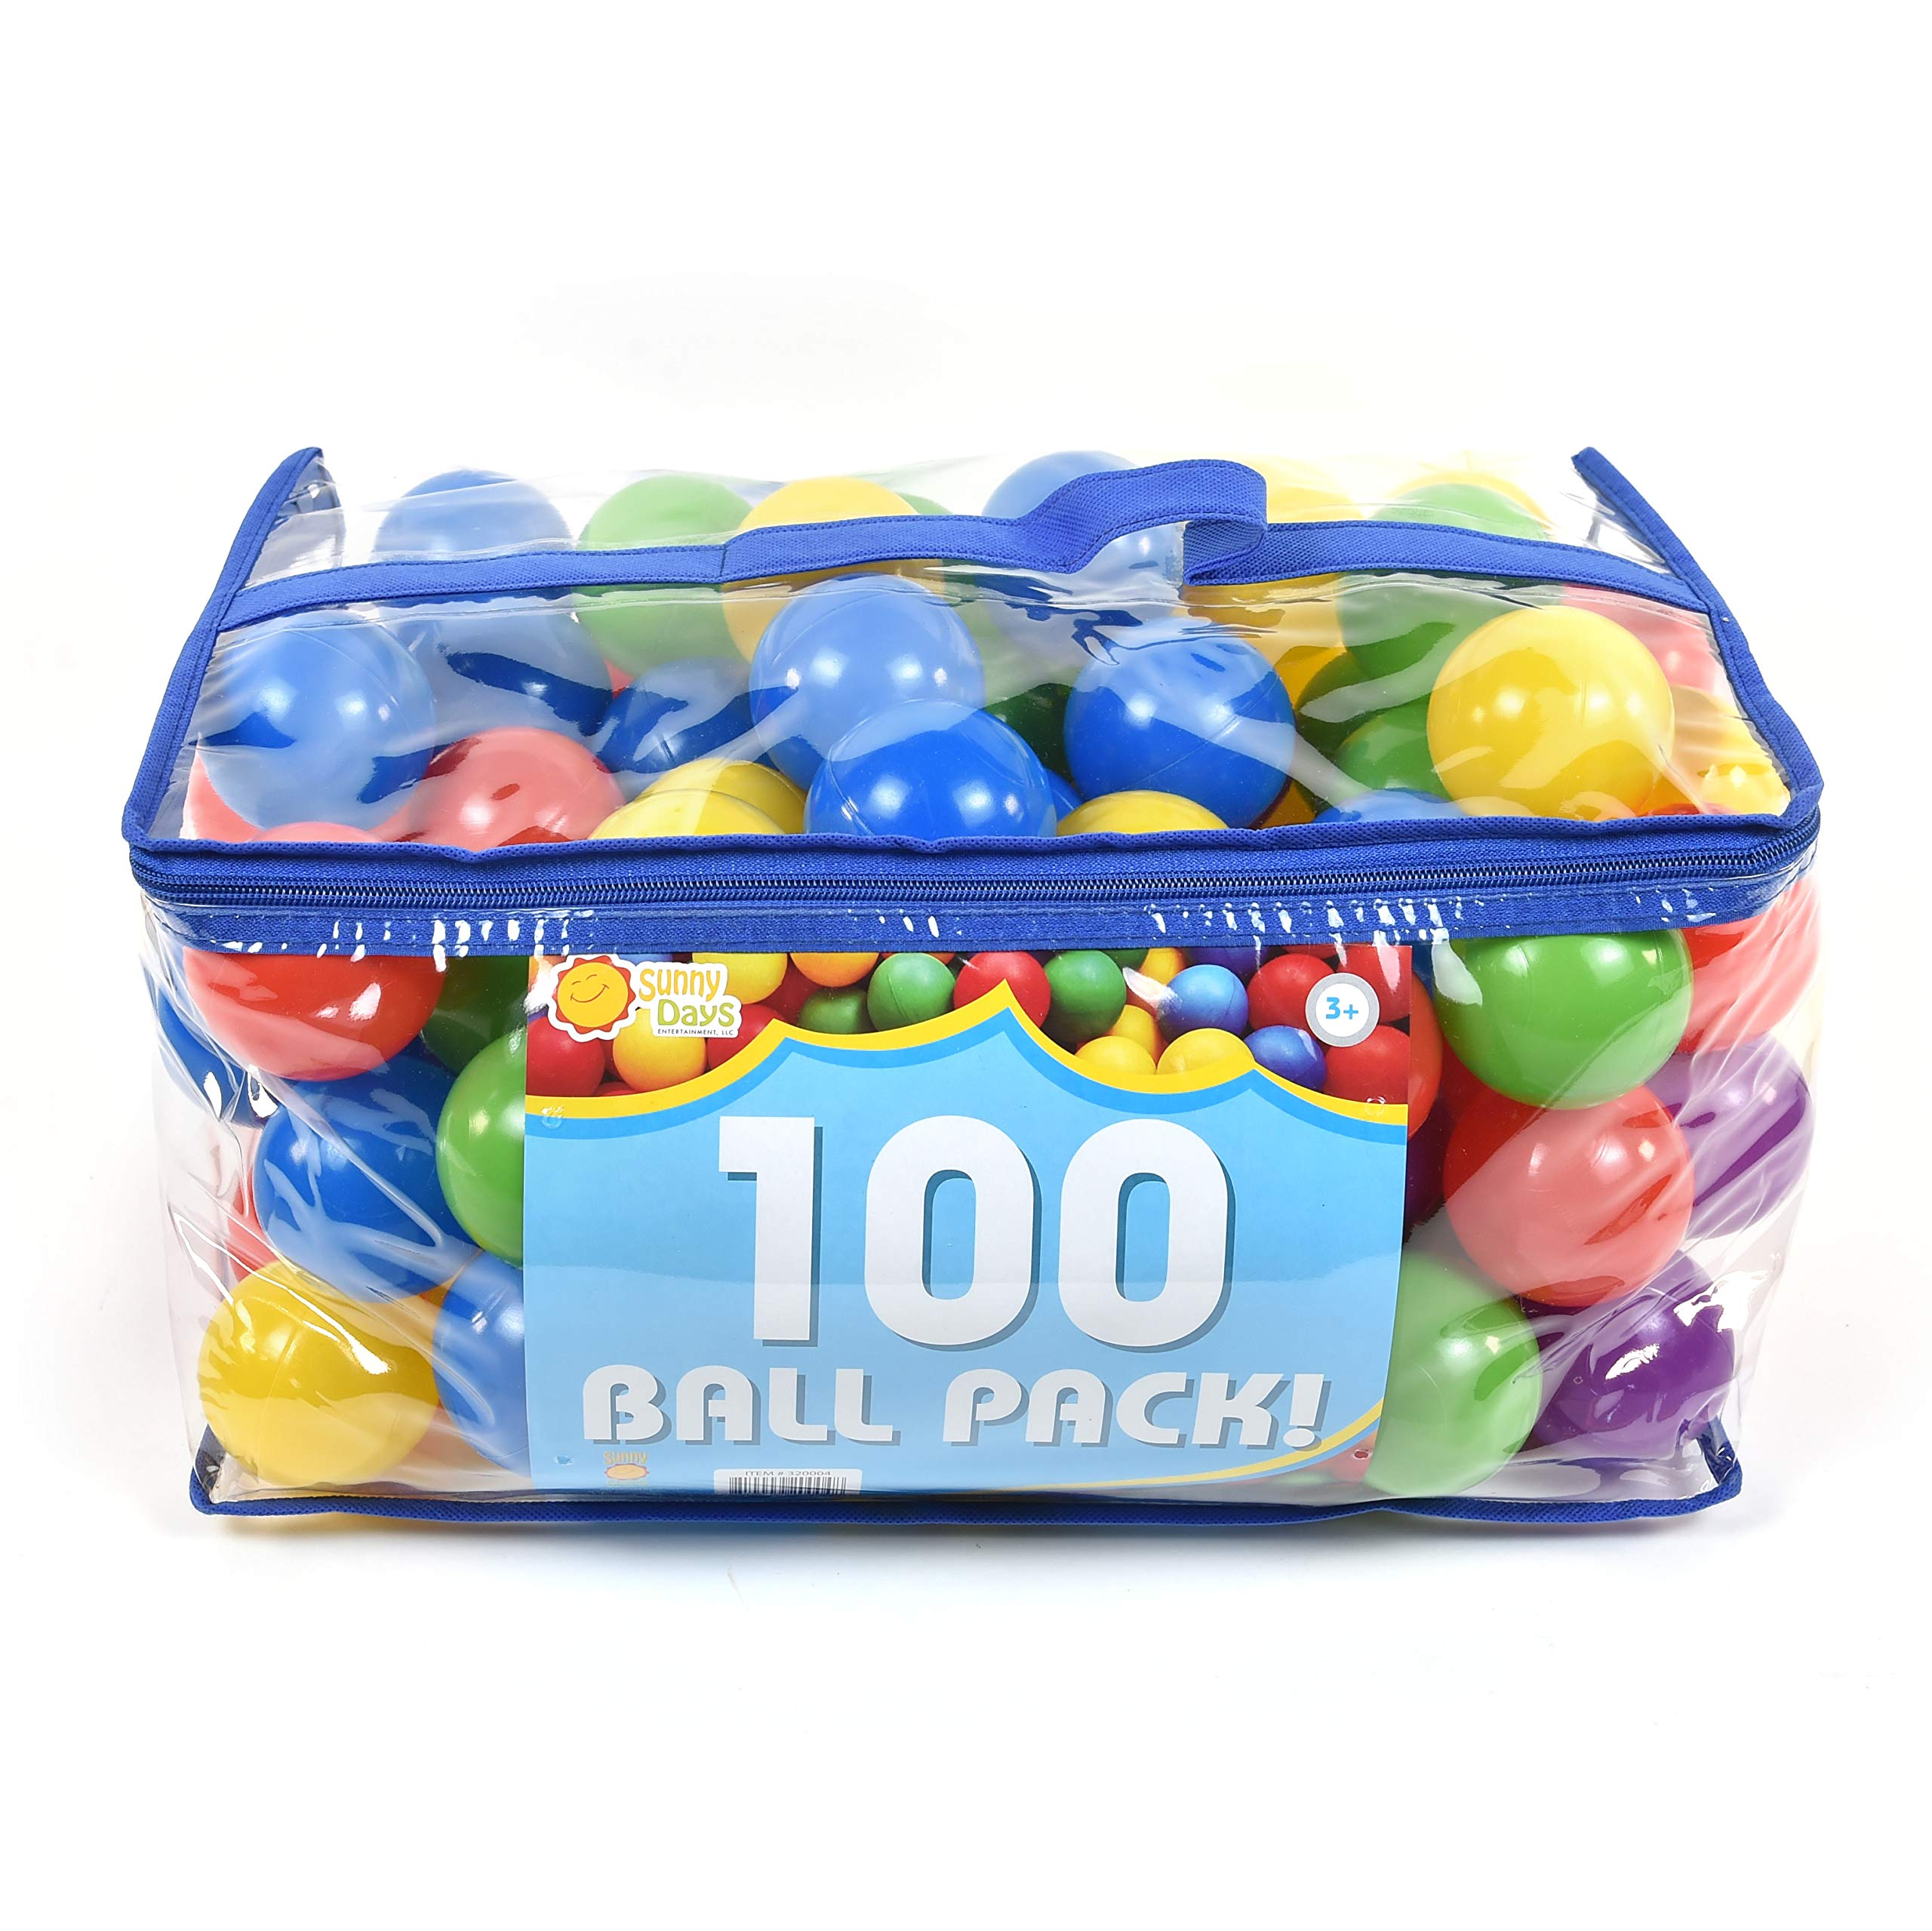 Sunny Days Entertainment 100Count Ball Pit Refills, Phthalate Free & Bpa Free, Crushproof Plastic in Assorted Colors by Sunny Days Entertainment